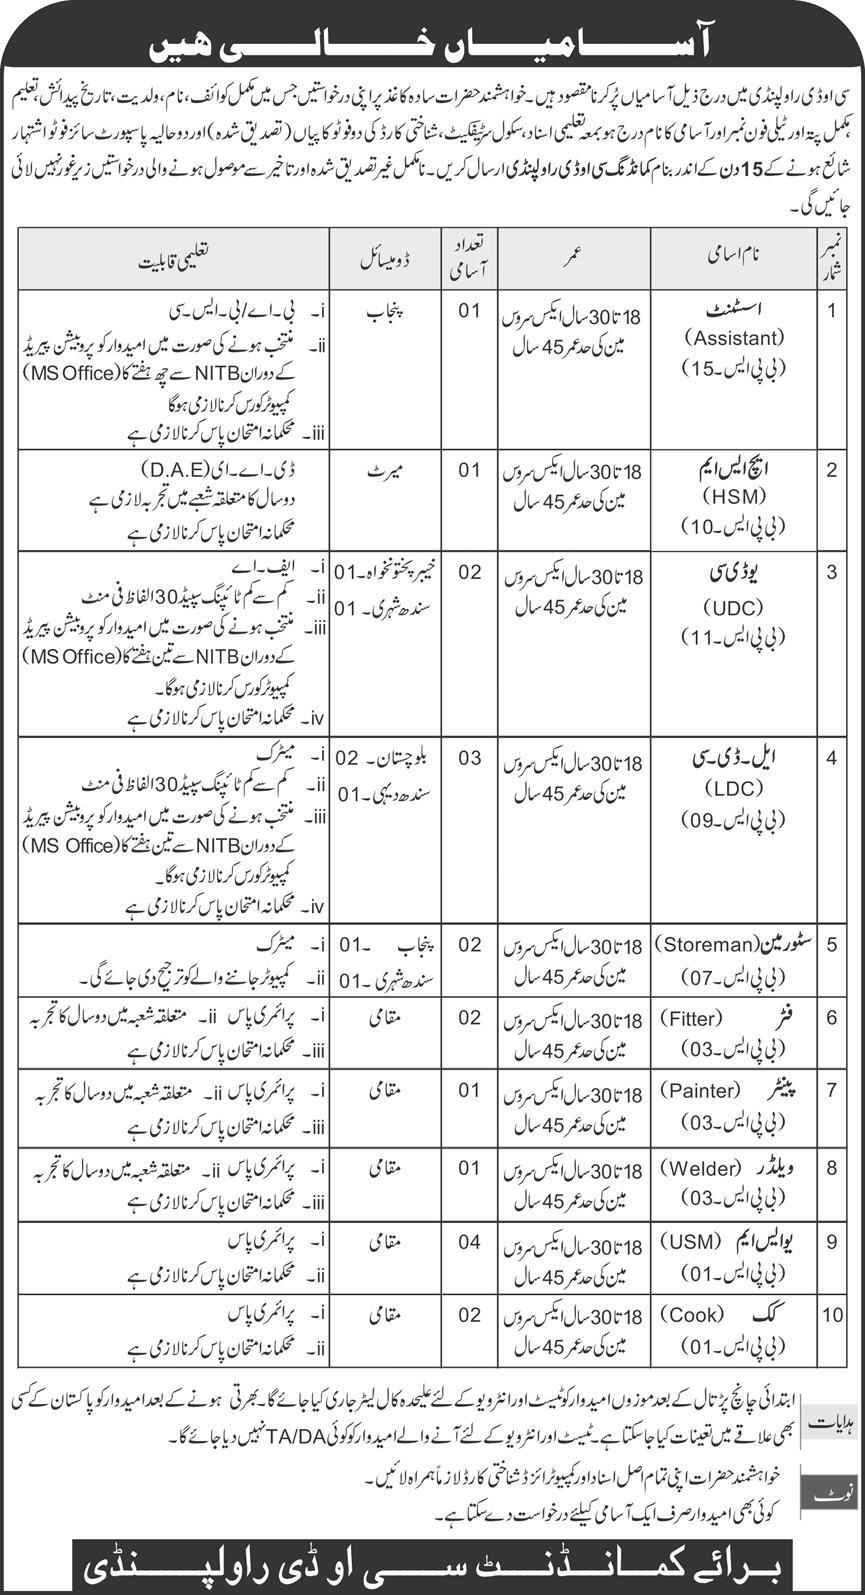 Latest Central Ordnance Depo Army jobs Posts 2020